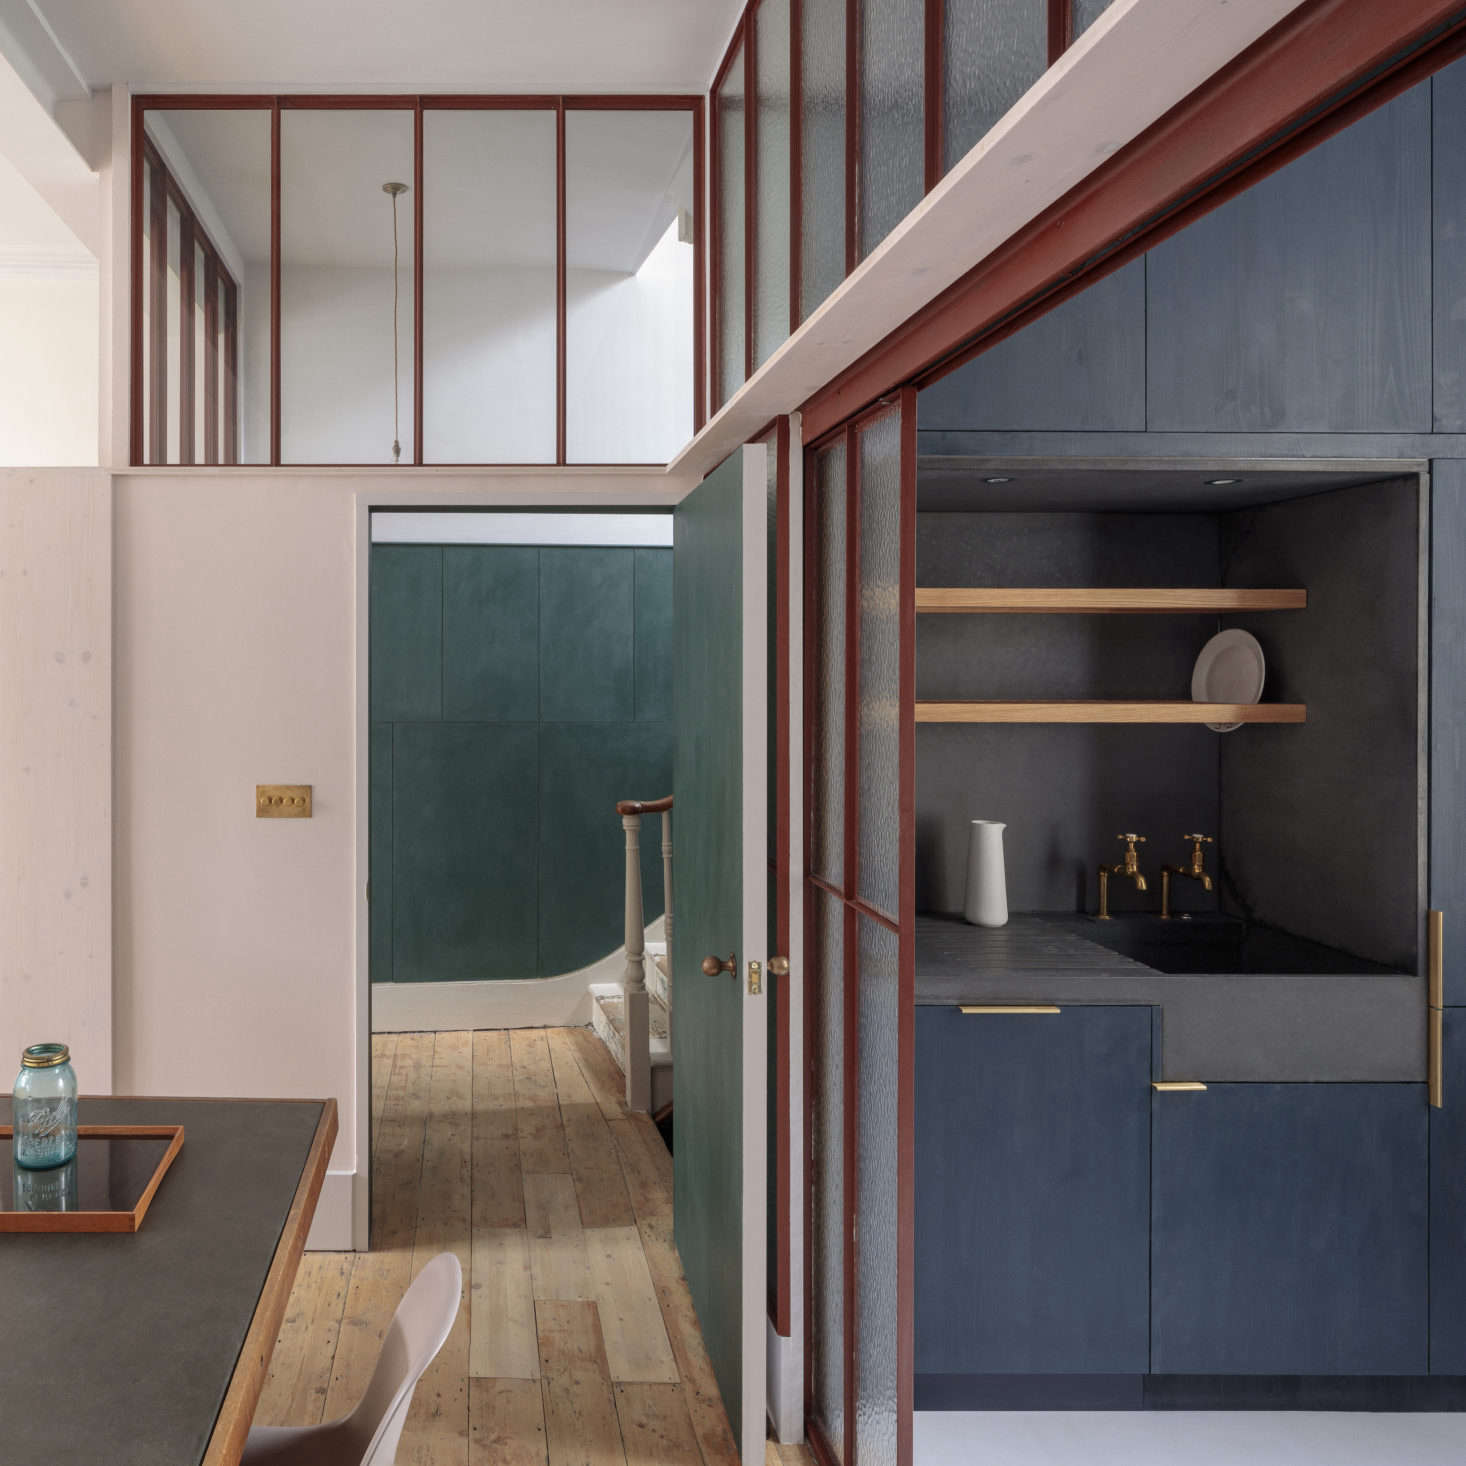 The kitchen sink and surrounding niche are all a single piece of Kast cast concrete with an overhead drying shelf. &#8